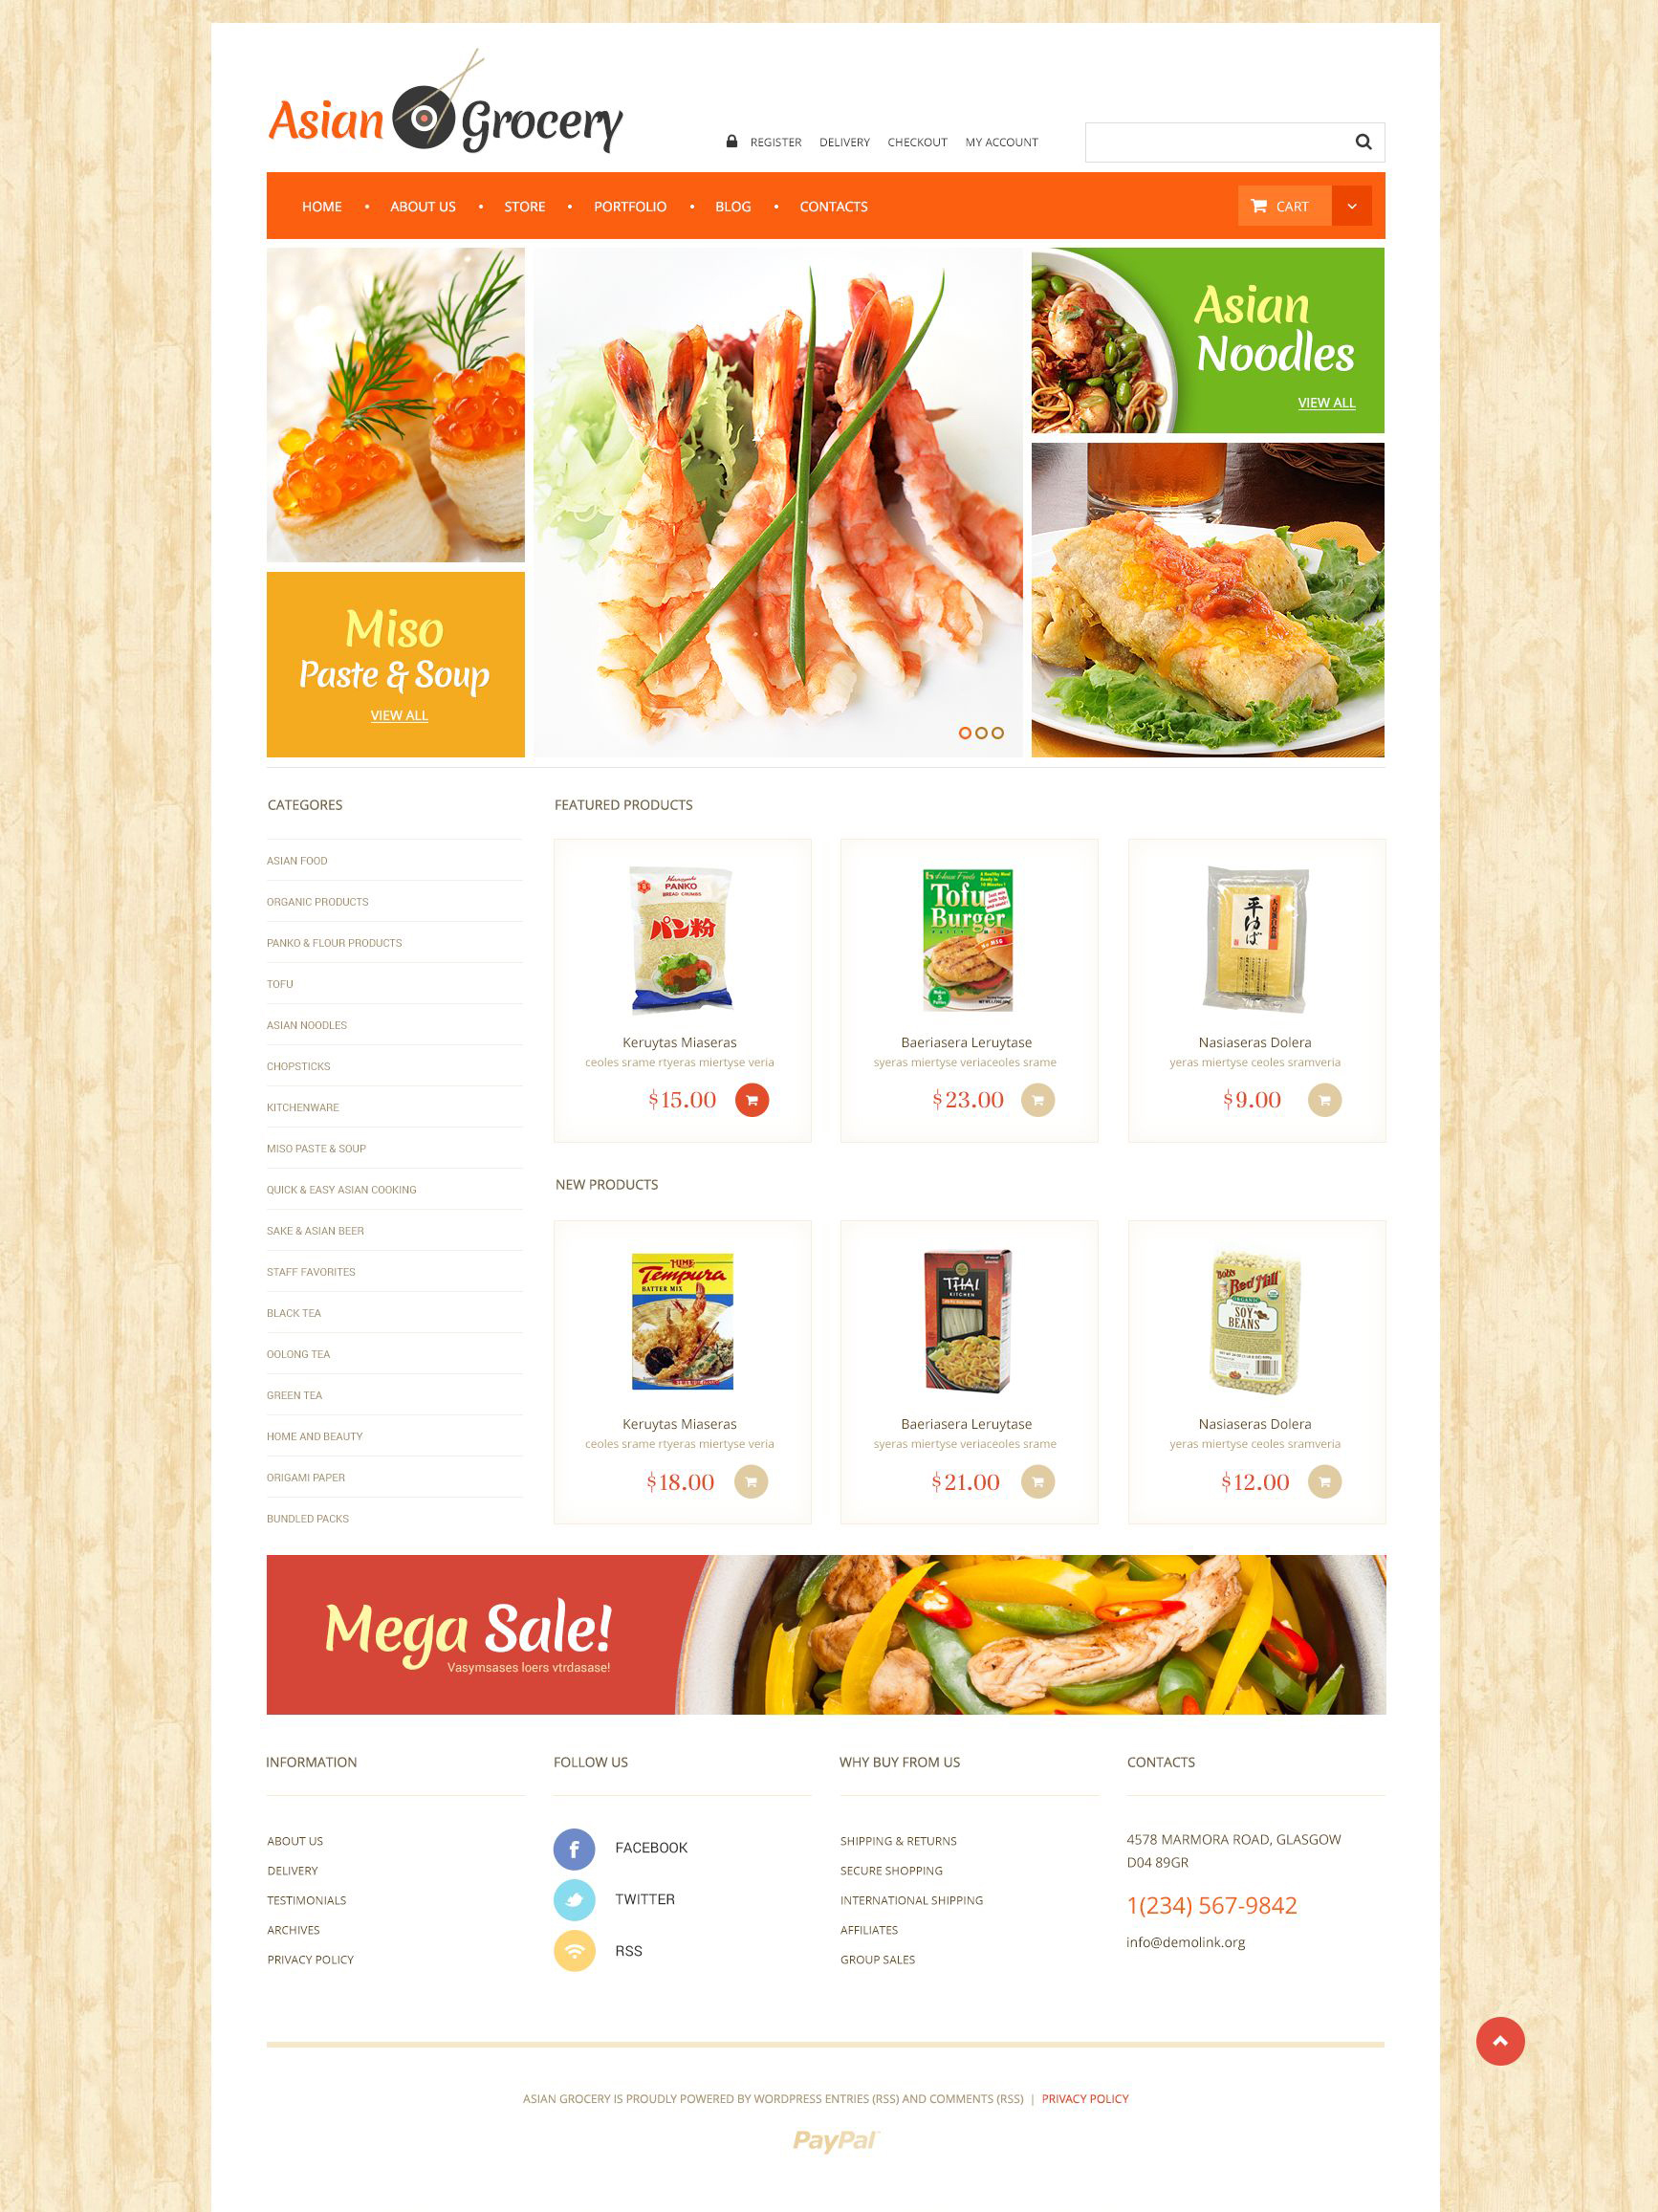 Asian Food Grocer - Your One-Stop Shop for Asian Groceries & Supplies! Asian Food Grocer is your best resource for quality Asian food, tasty Asian food recipes, and flavorful Japanese seasonings.